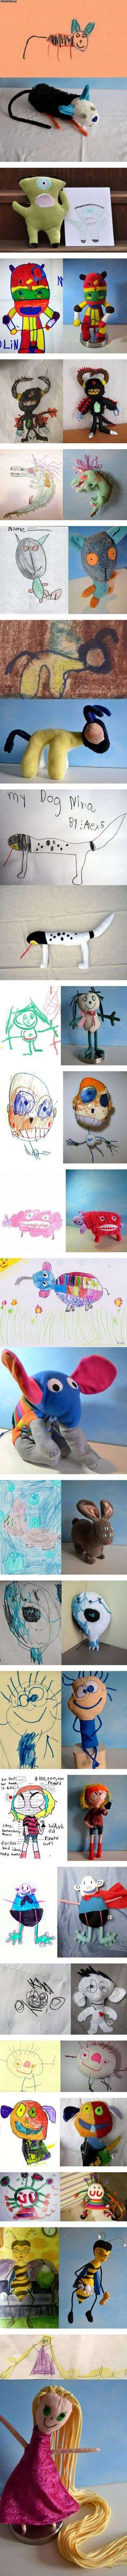 I want to send some of my childhood drawings to them :) (children's drawings made into toys)